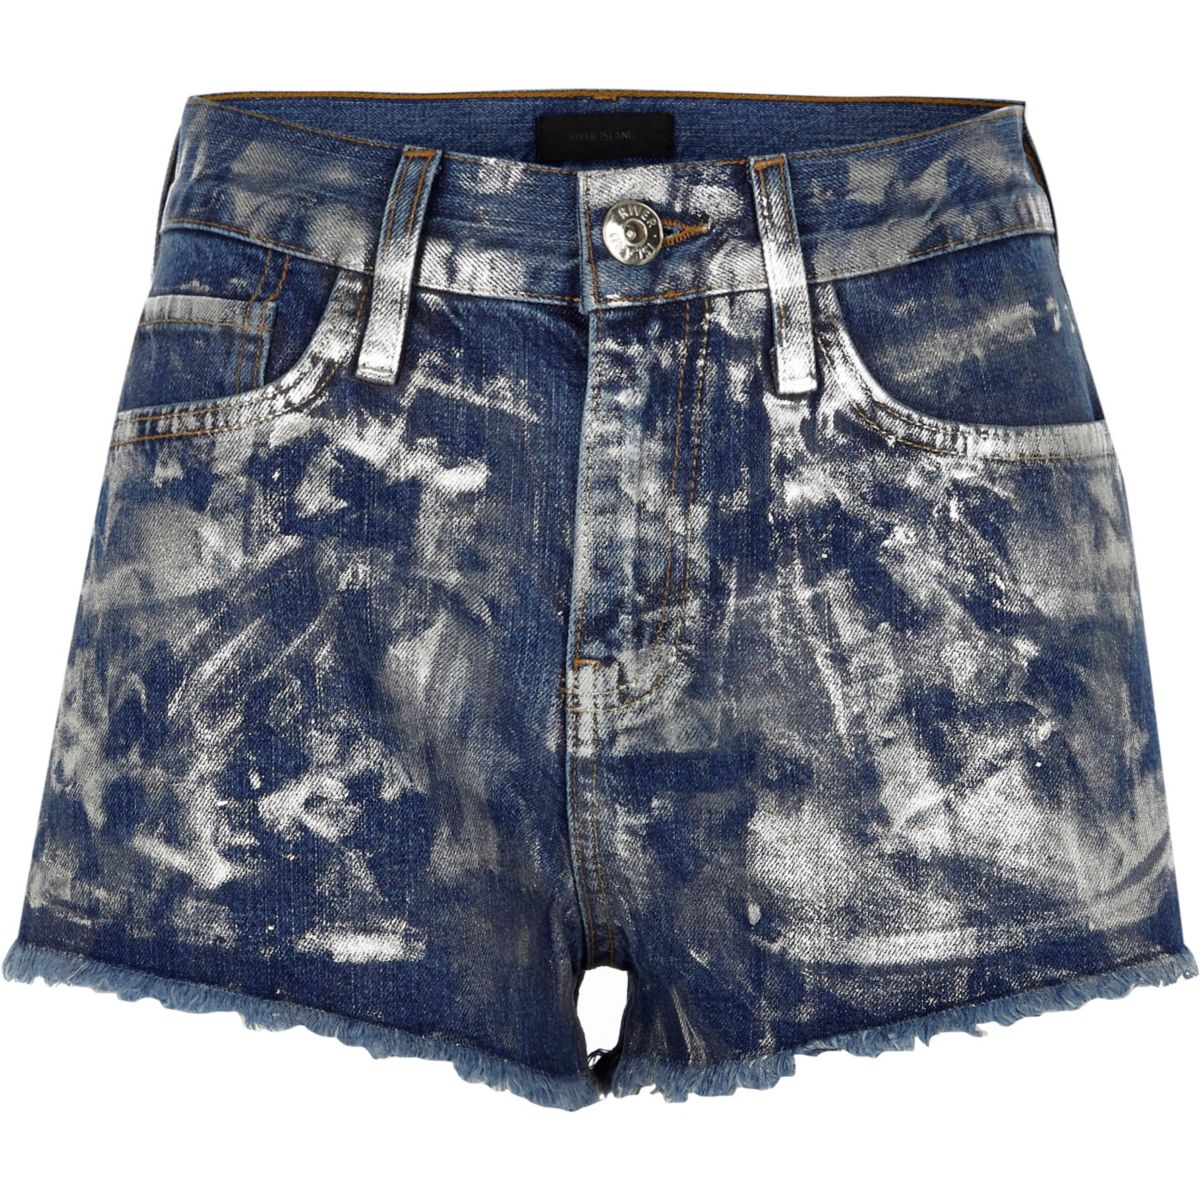 Jeans-Hotpants in Mittelblau-Metallic